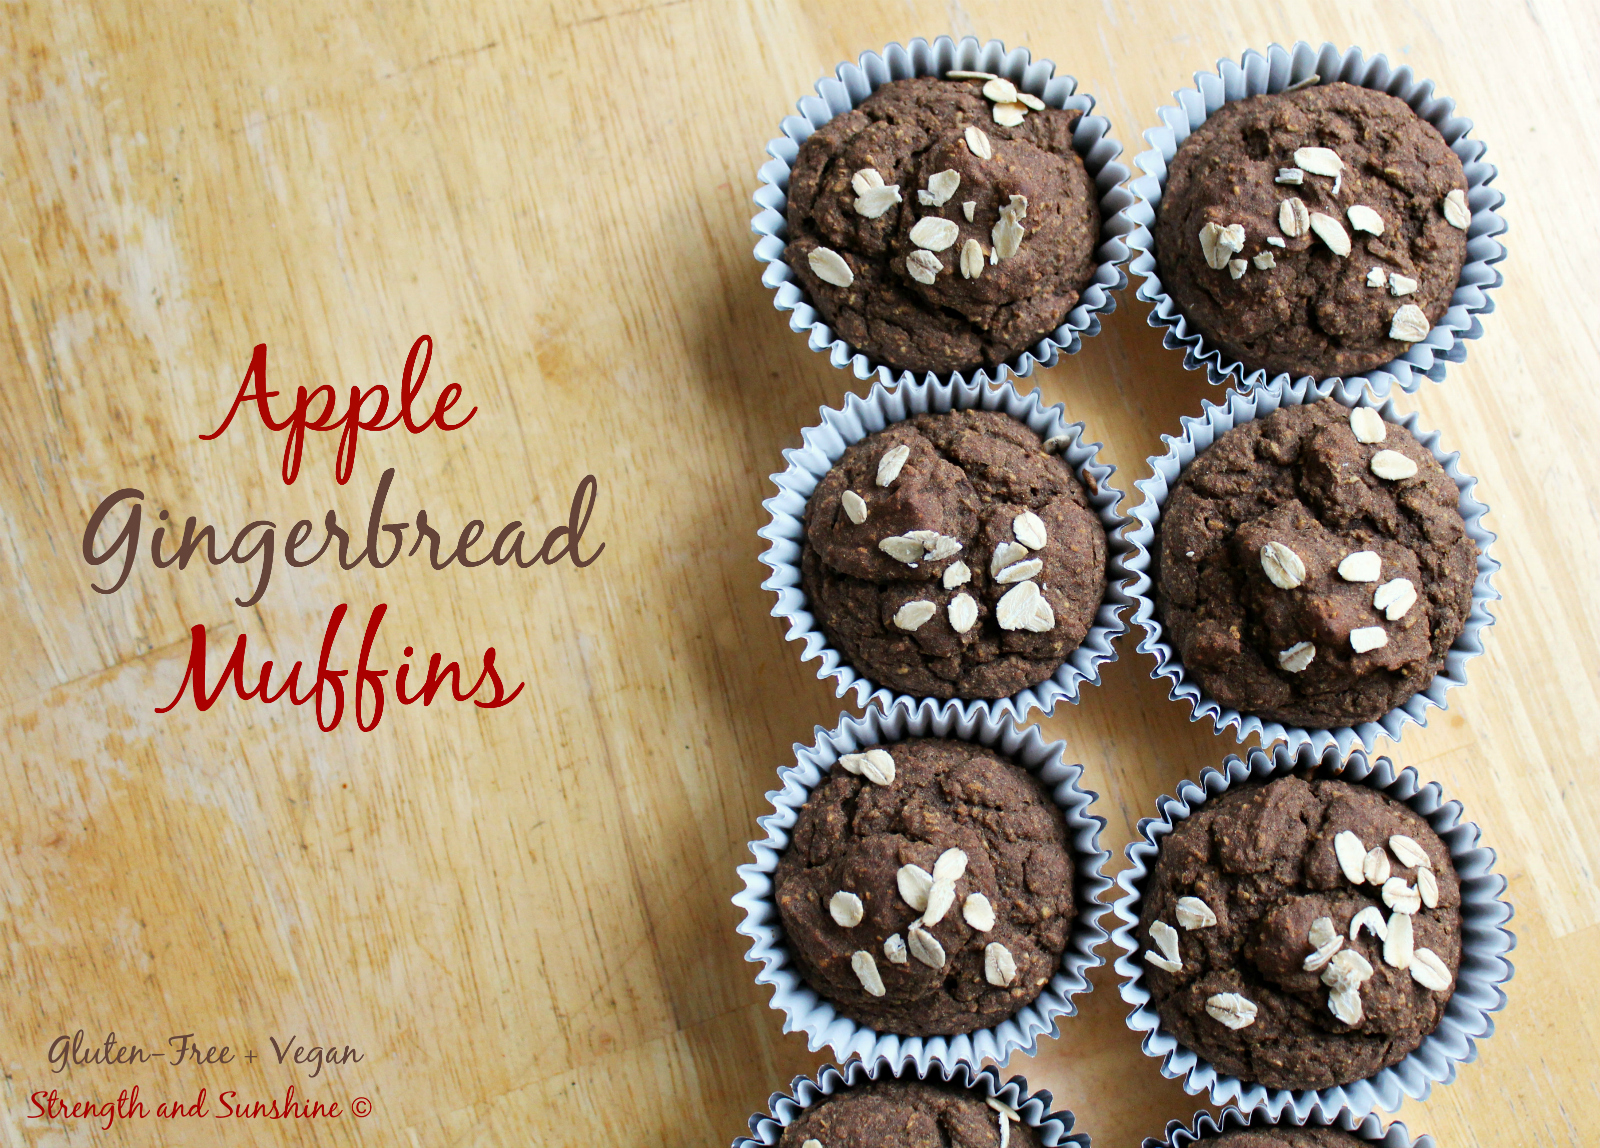 Apple Gingerbread Muffins | Strength and Sunshine @RebeccaGF666 #glutenfree #vegan #gingerbread #muffins #apple #baking